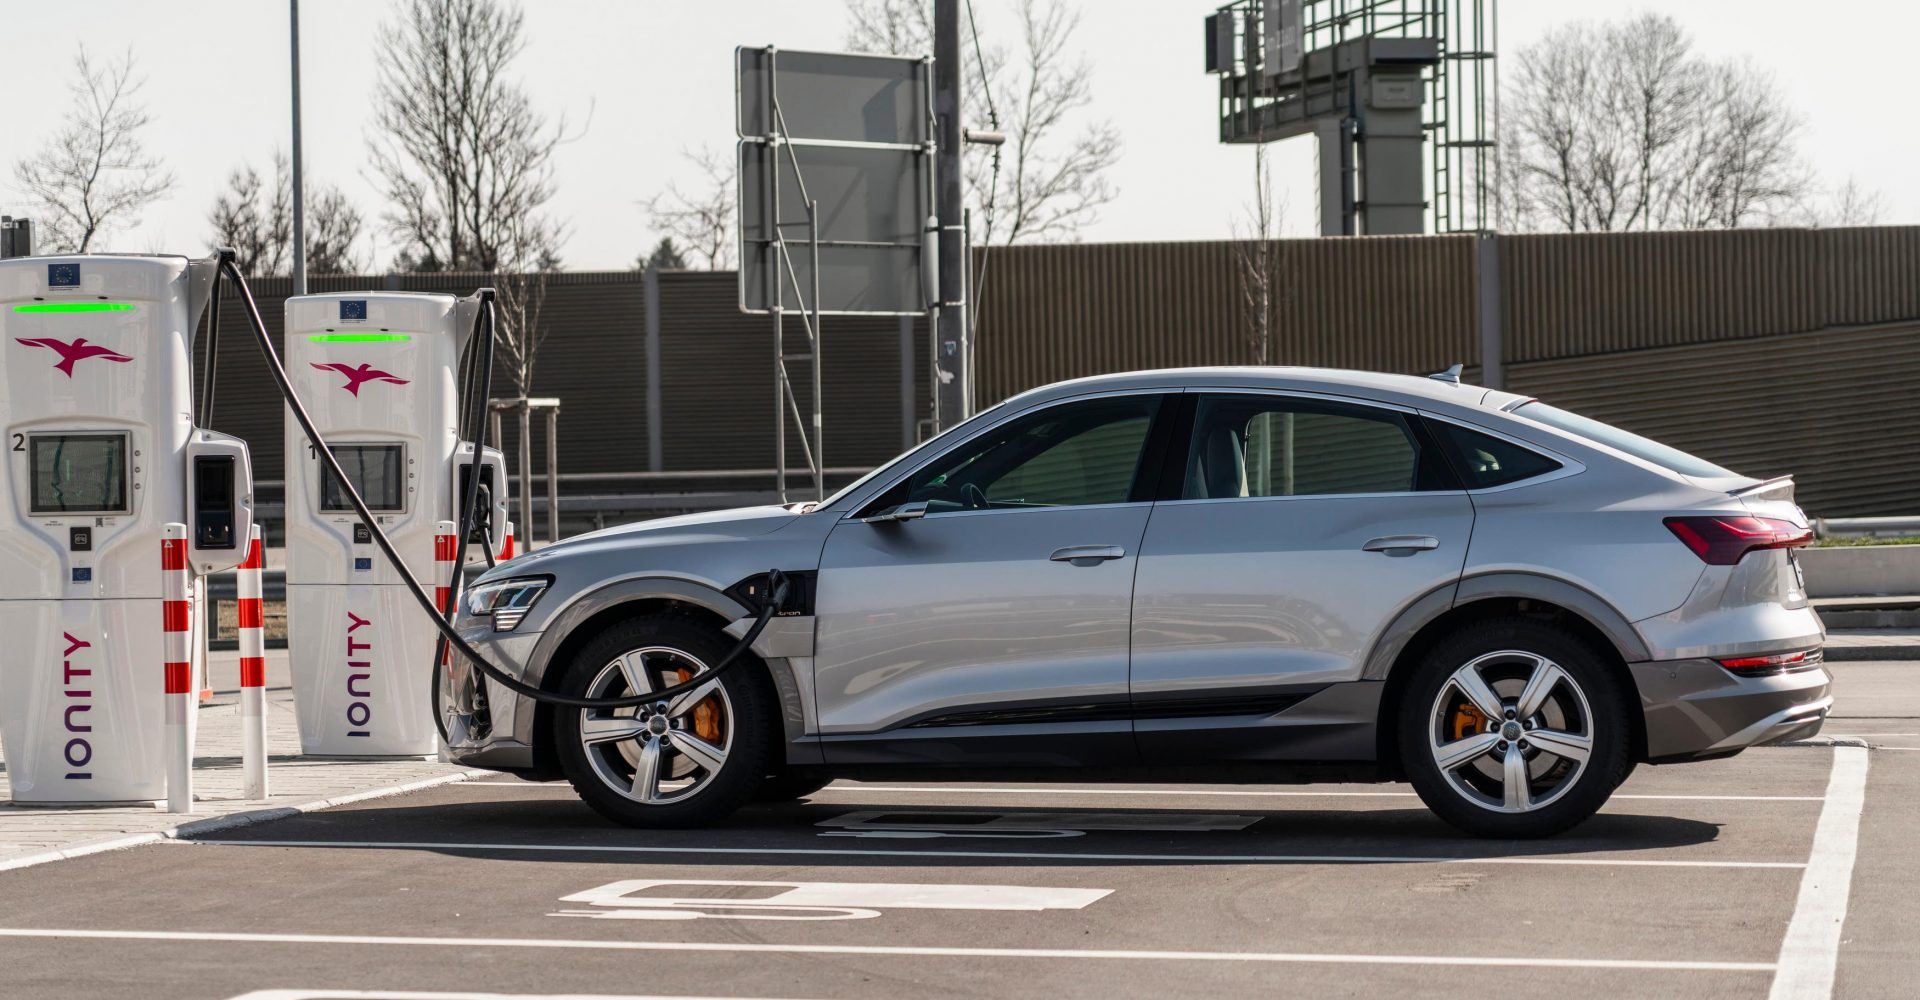 Ninety per cent of EV drivers use public charging stations